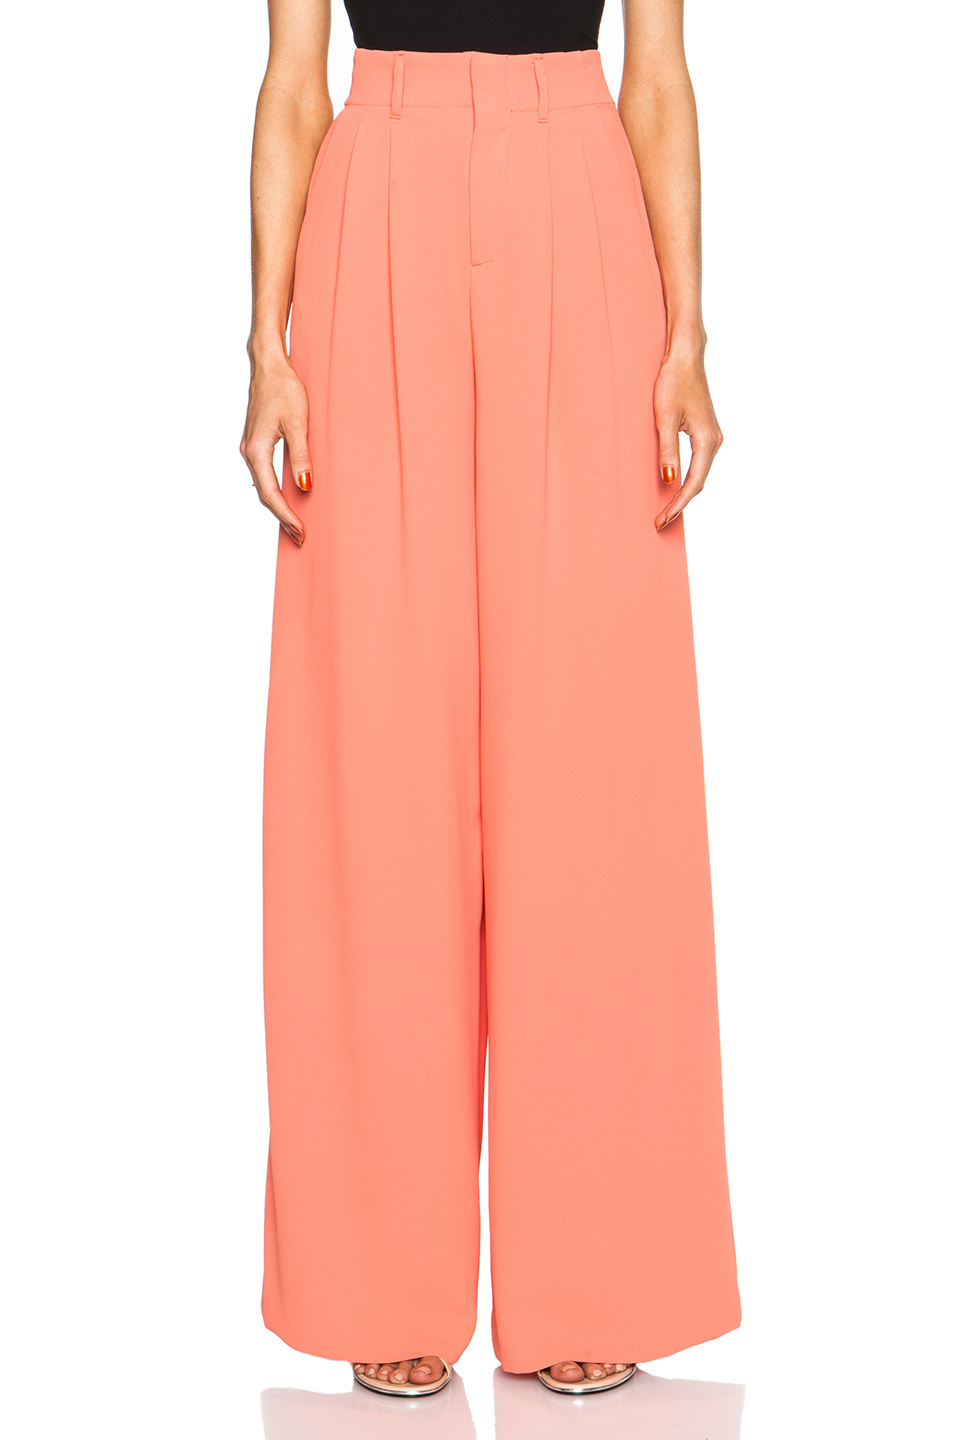 ALICE + OLIVIA - STRAIGHT WIDE LEG TROUSERS